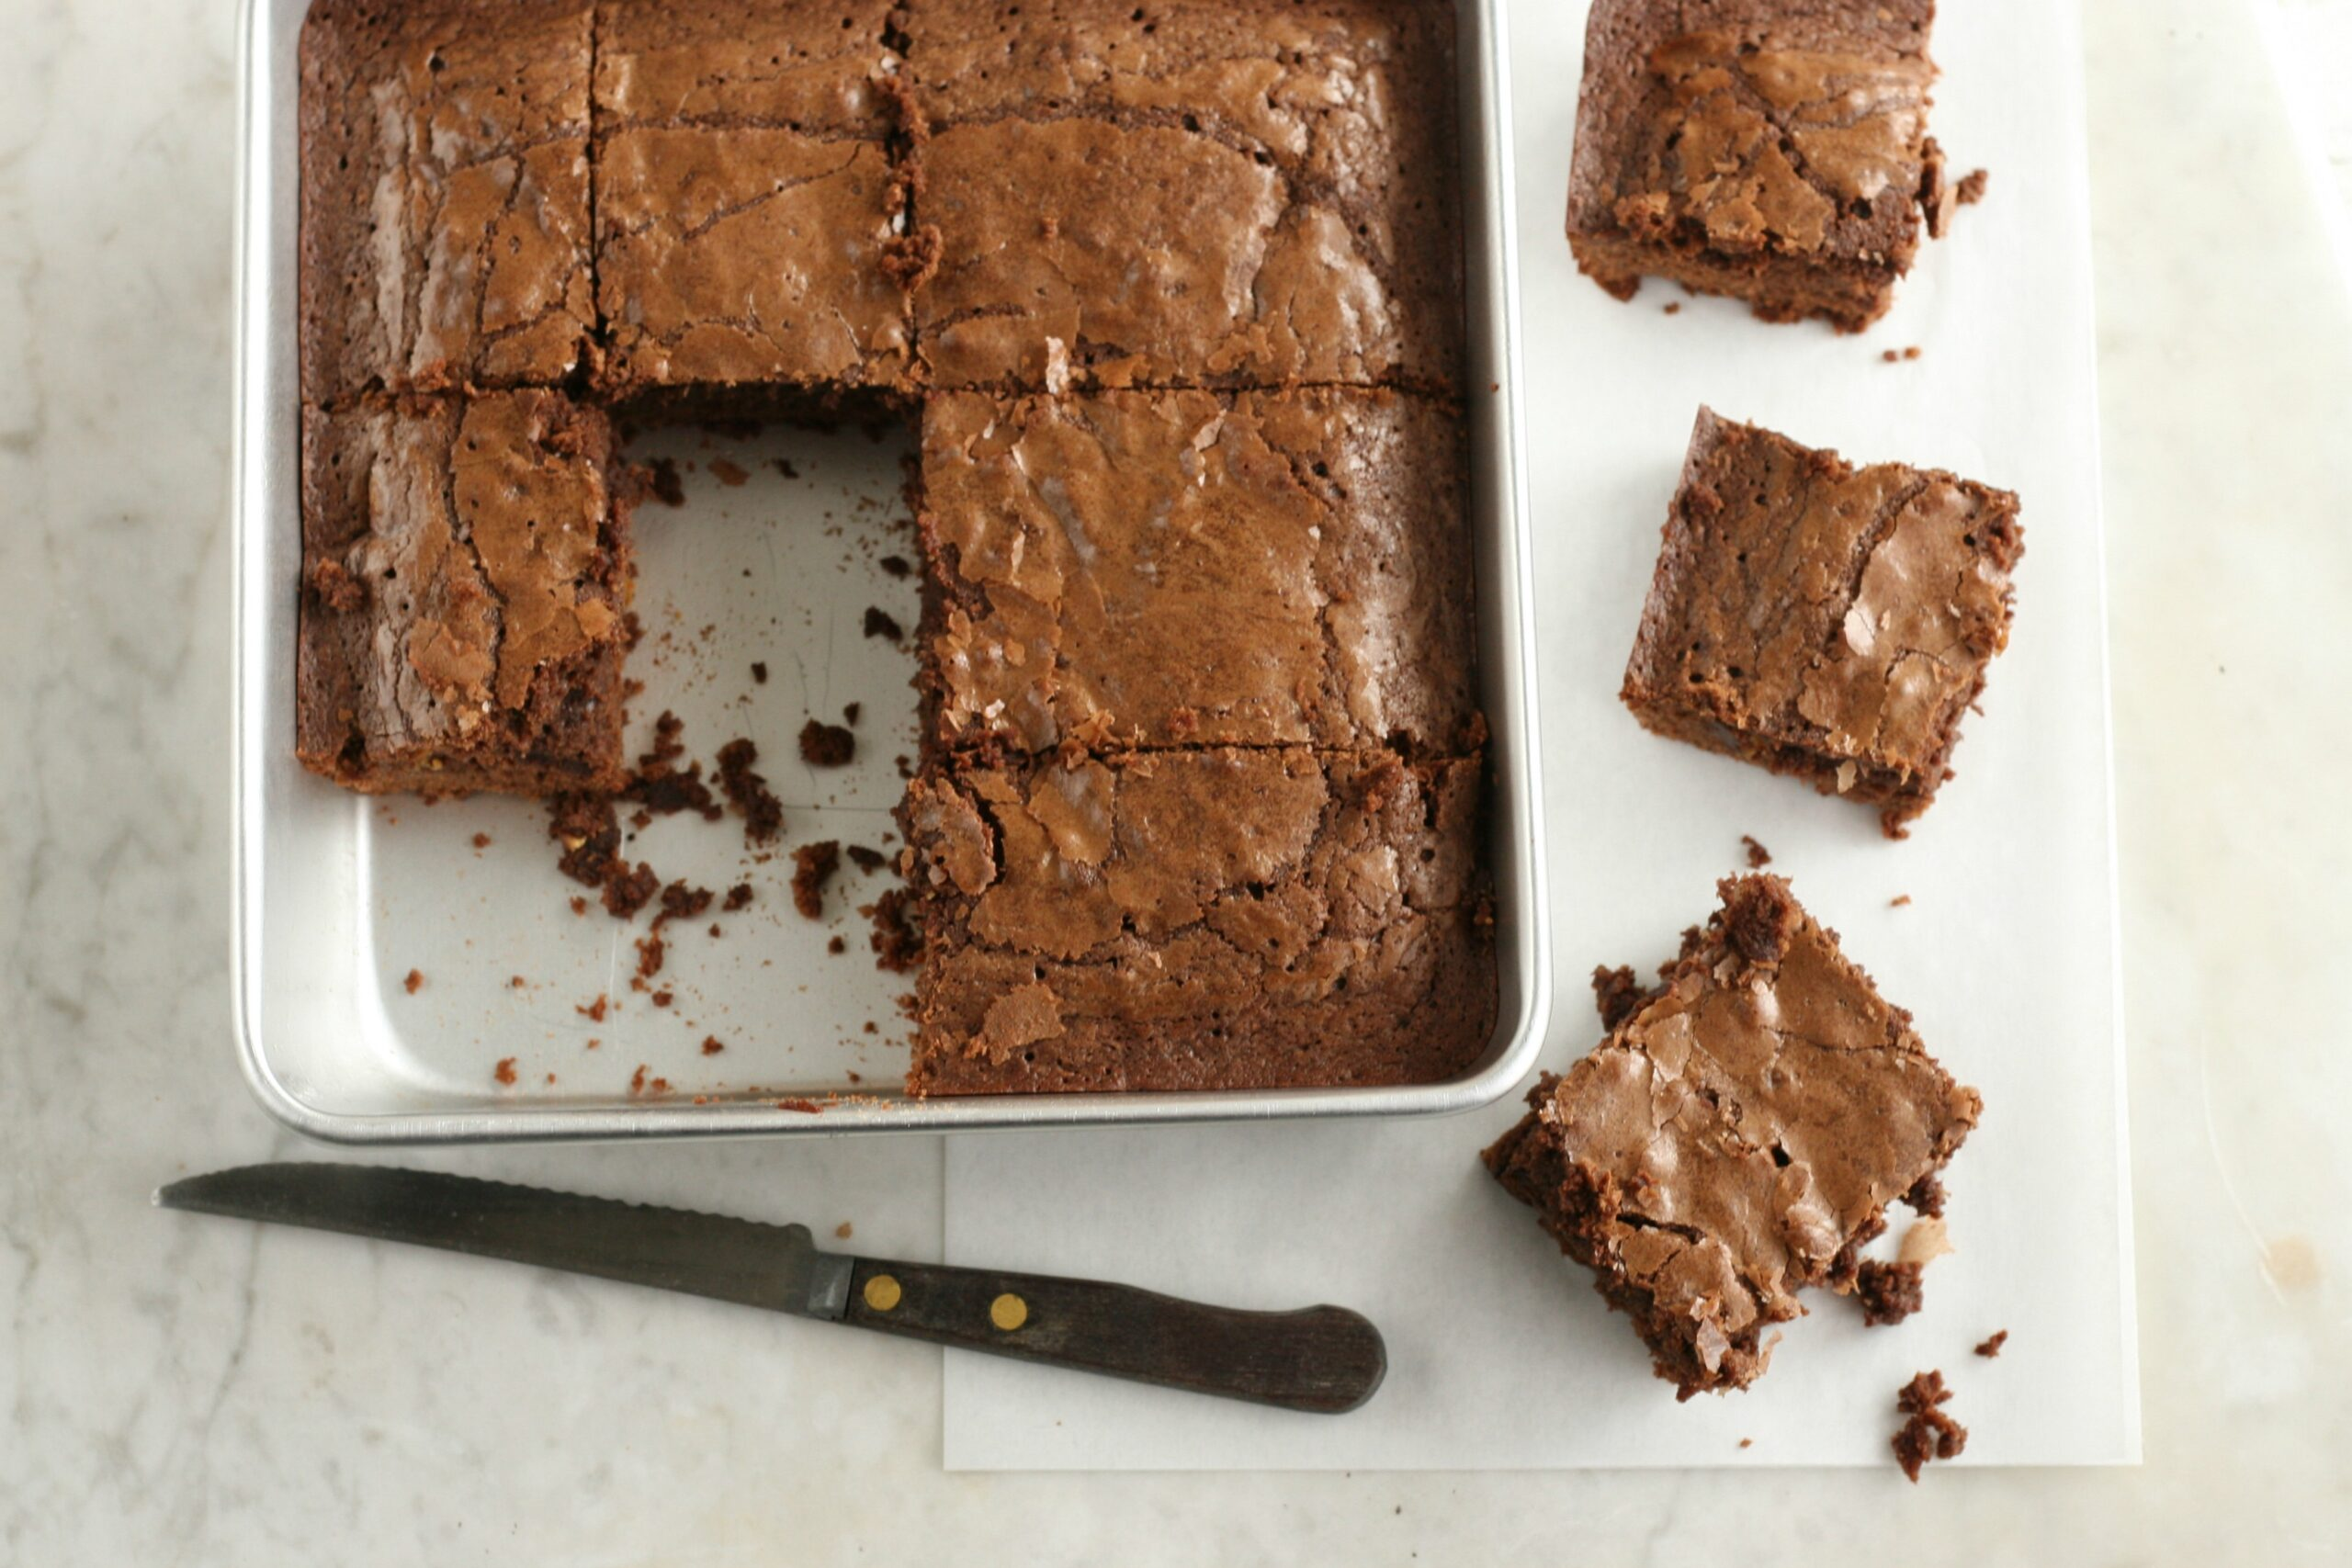 Homemade brownies in square metal baking dish, cut into squares. Some outside the pan to the right.